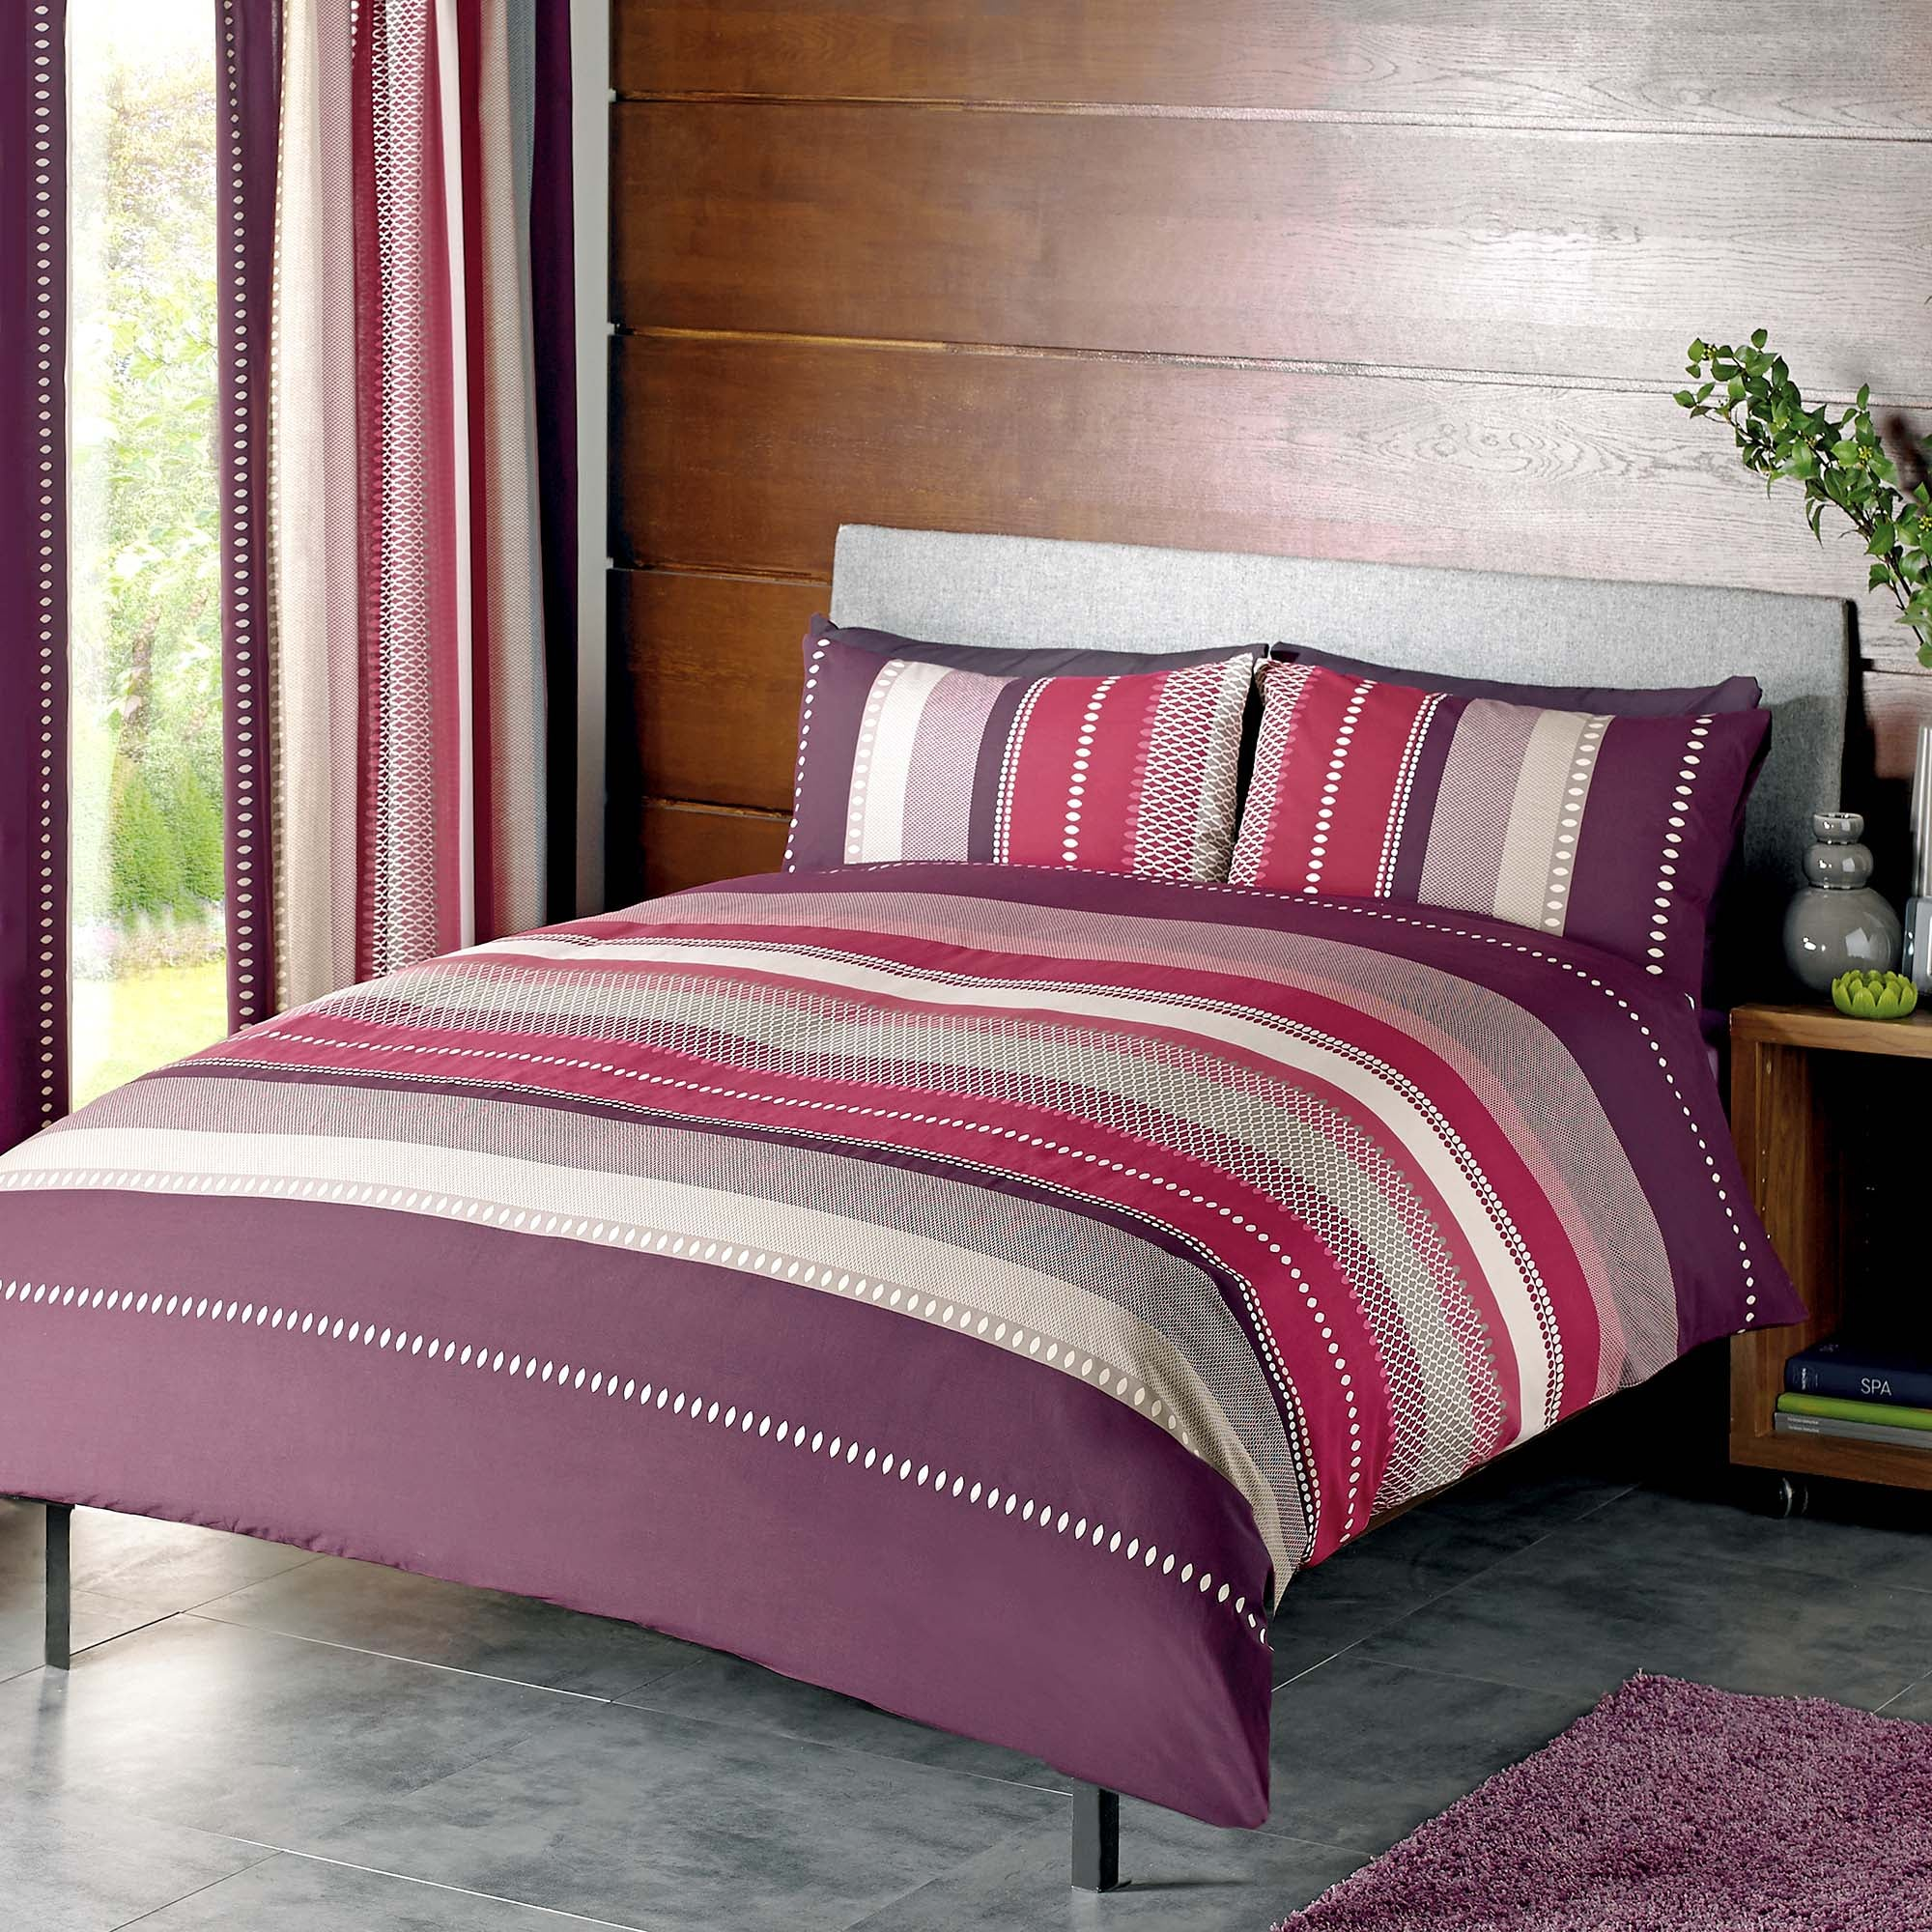 plum cologne collection duvet cover set. Black Bedroom Furniture Sets. Home Design Ideas